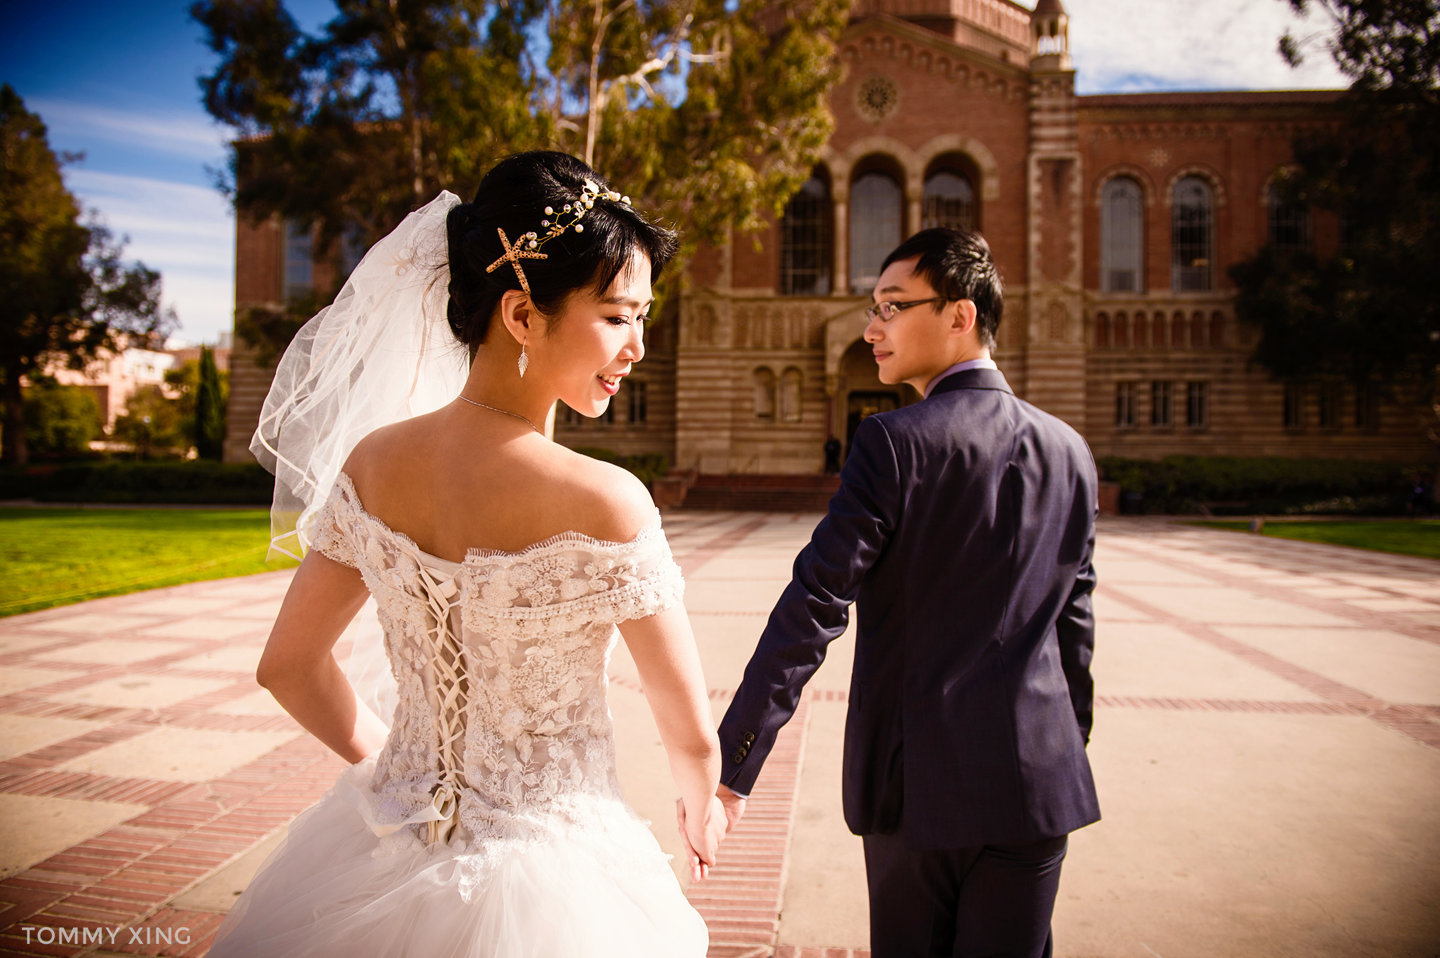 洛杉矶旧金山婚礼婚纱照摄影师 Tommy Xing Los Angeles wedding photographer 09.jpg